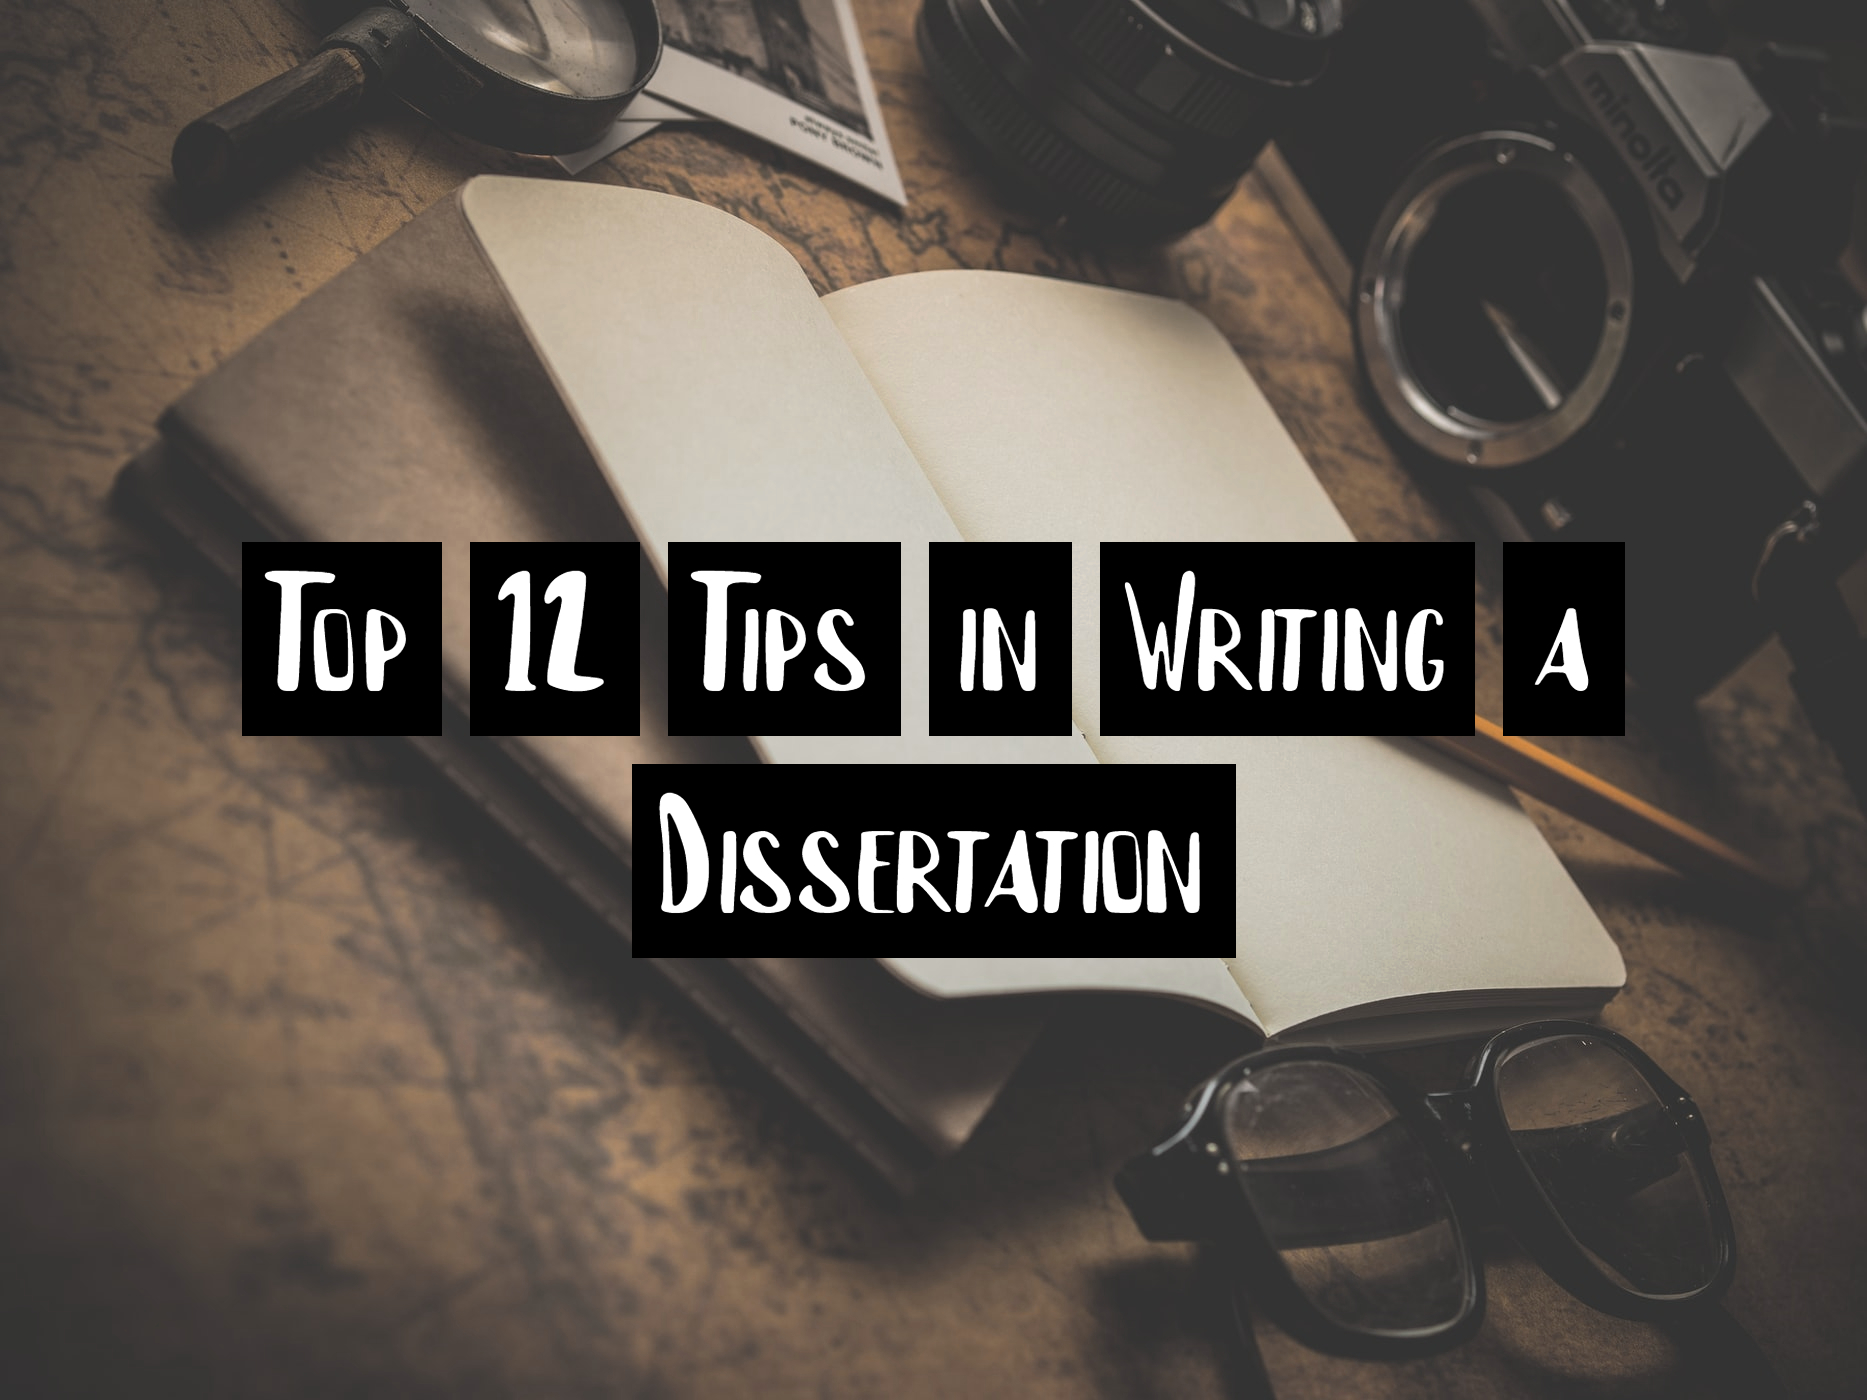 Top 12 Tips in Writing a Dissertation